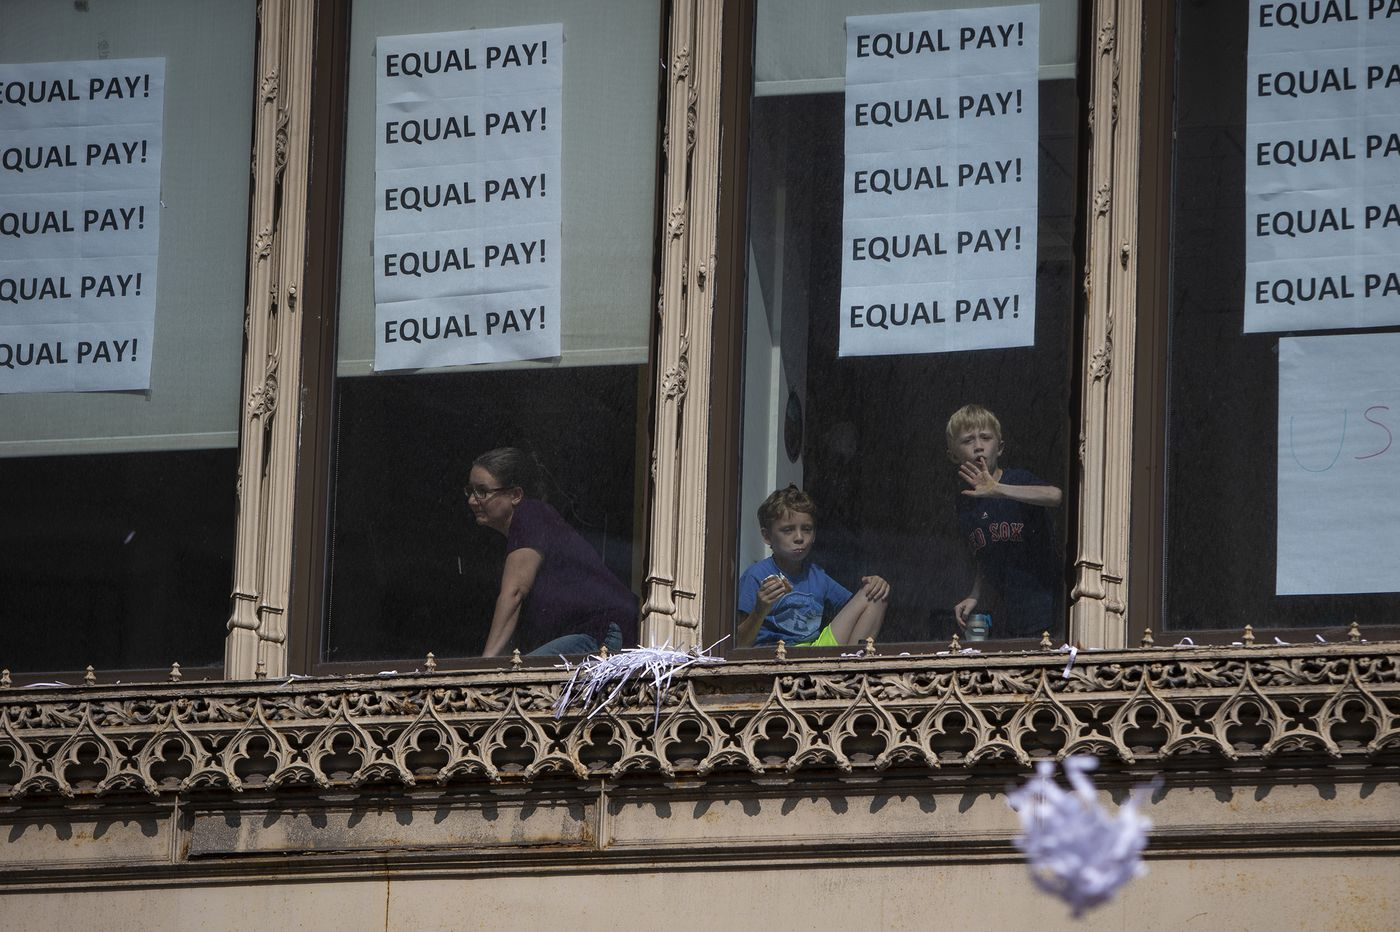 Equal pay: Two myths that persist | Opinion